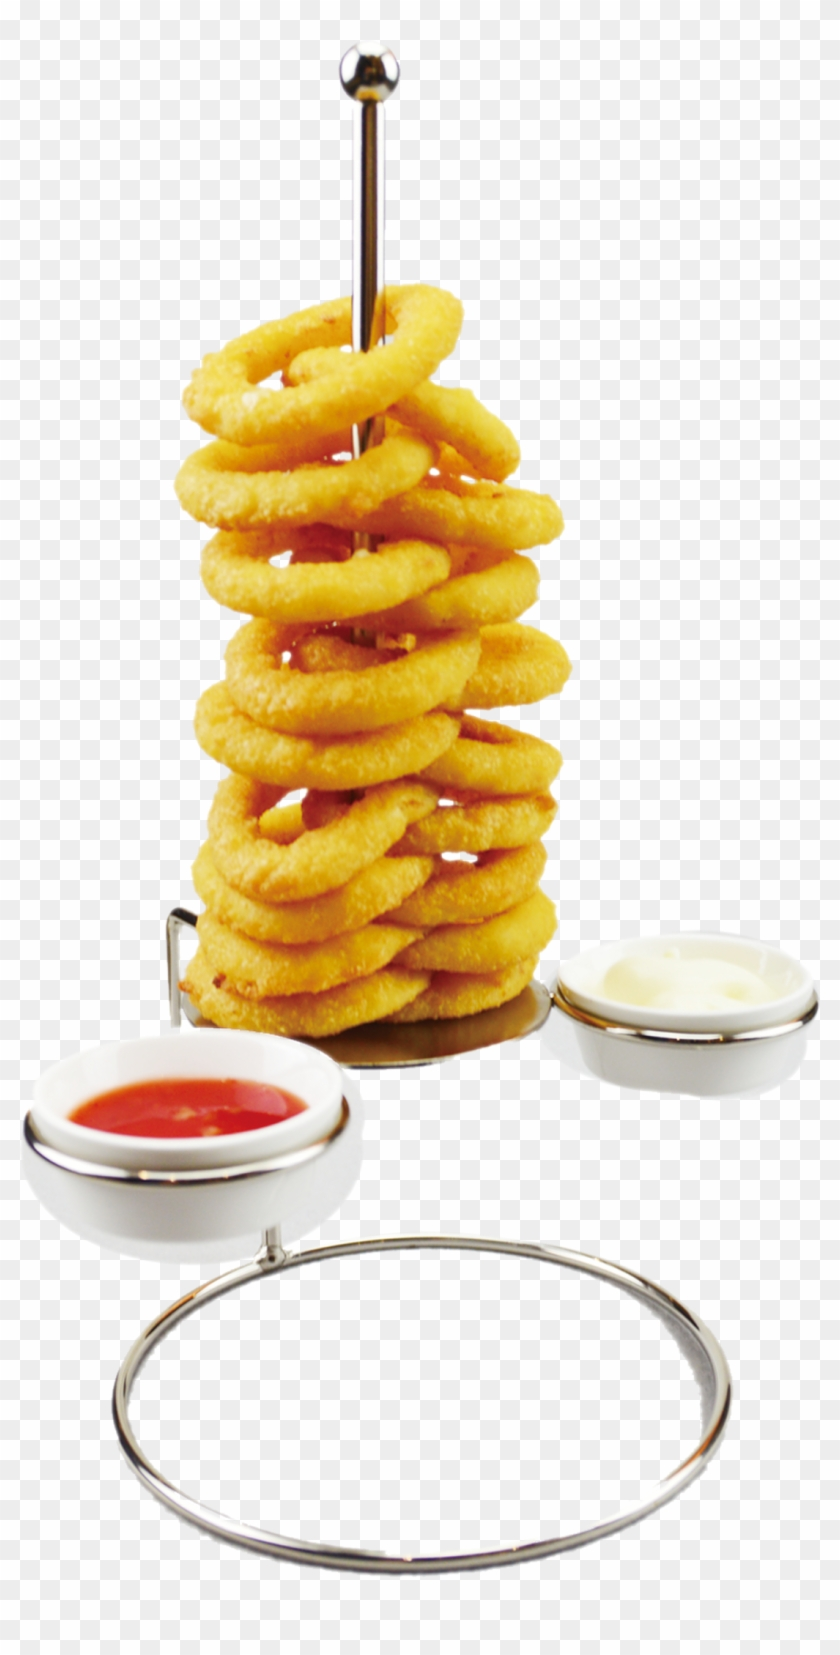 Illustration Featuring A Basket Of Onion Rings Royalty Free Cliparts,  Vectors, And Stock Illustration. Image 34020557.